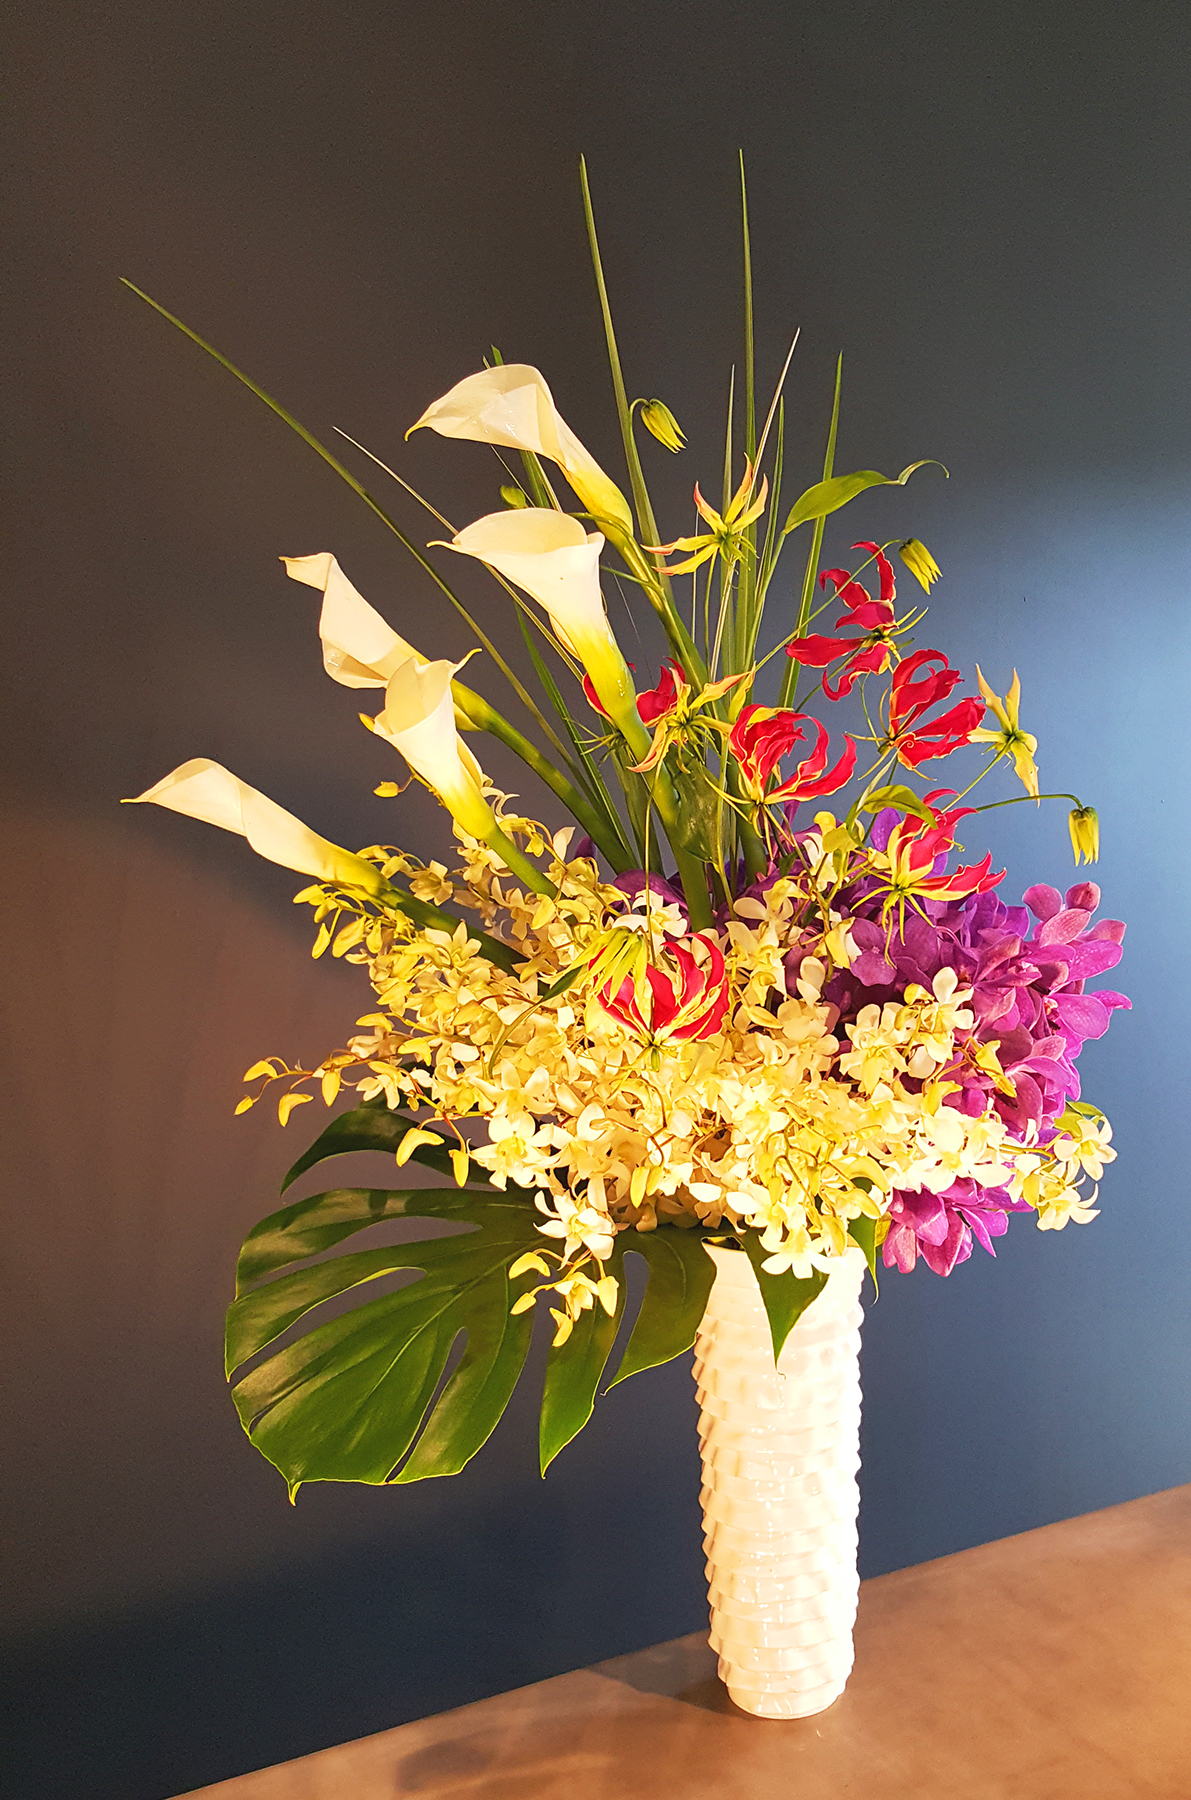 Whimsical floral arrangement for office or restaurant locations